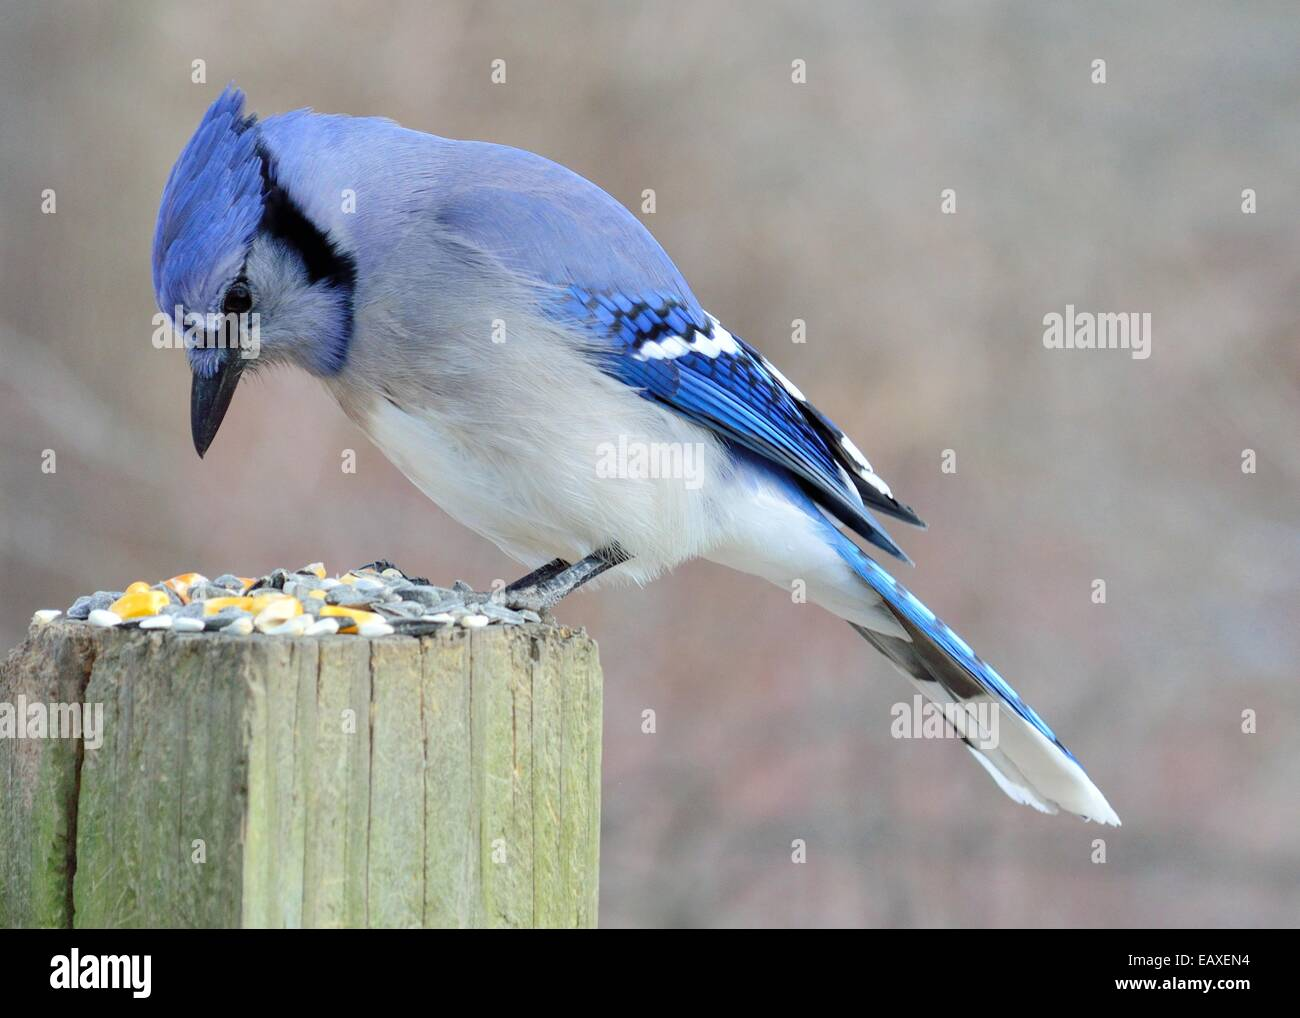 Blue Jay perched on a post eating peanuts. Stock Photo